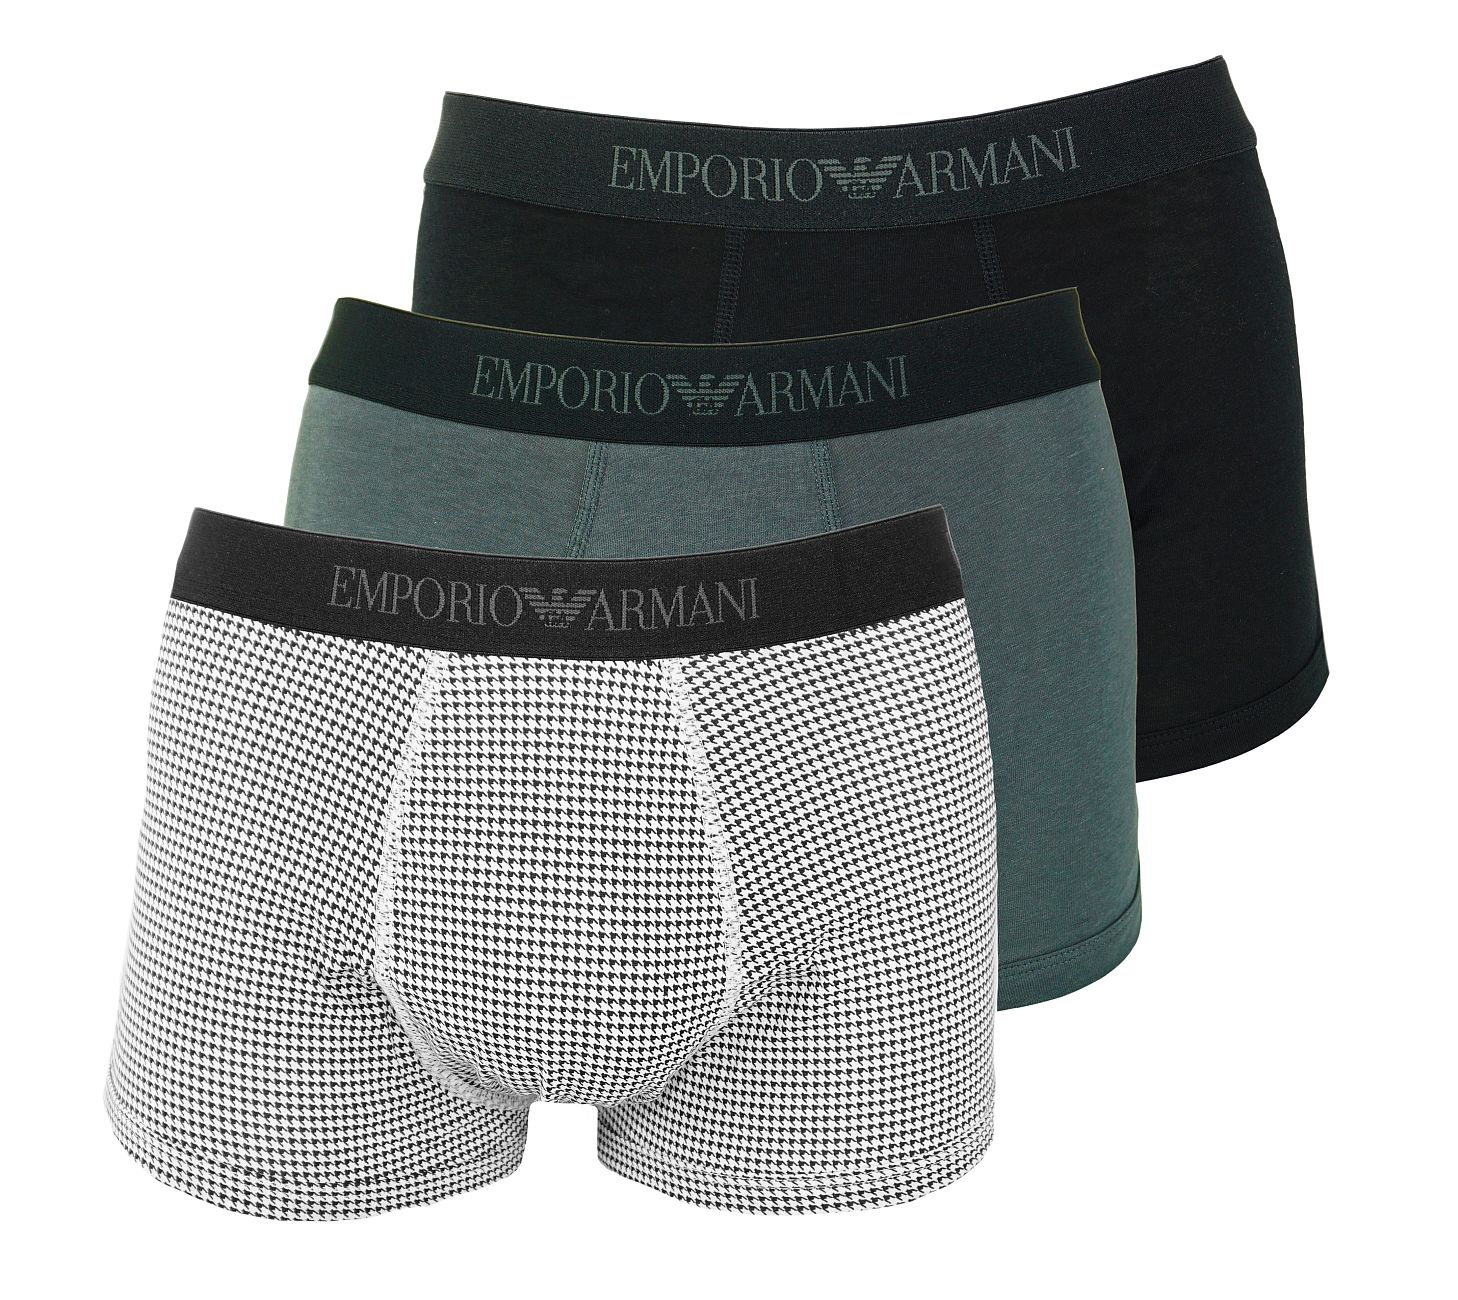 Emporio Armani 3er Pack Trunks Shorts 111625 8A722 60120 NERO/NER.ST/ANTRACIT WX18-EAU